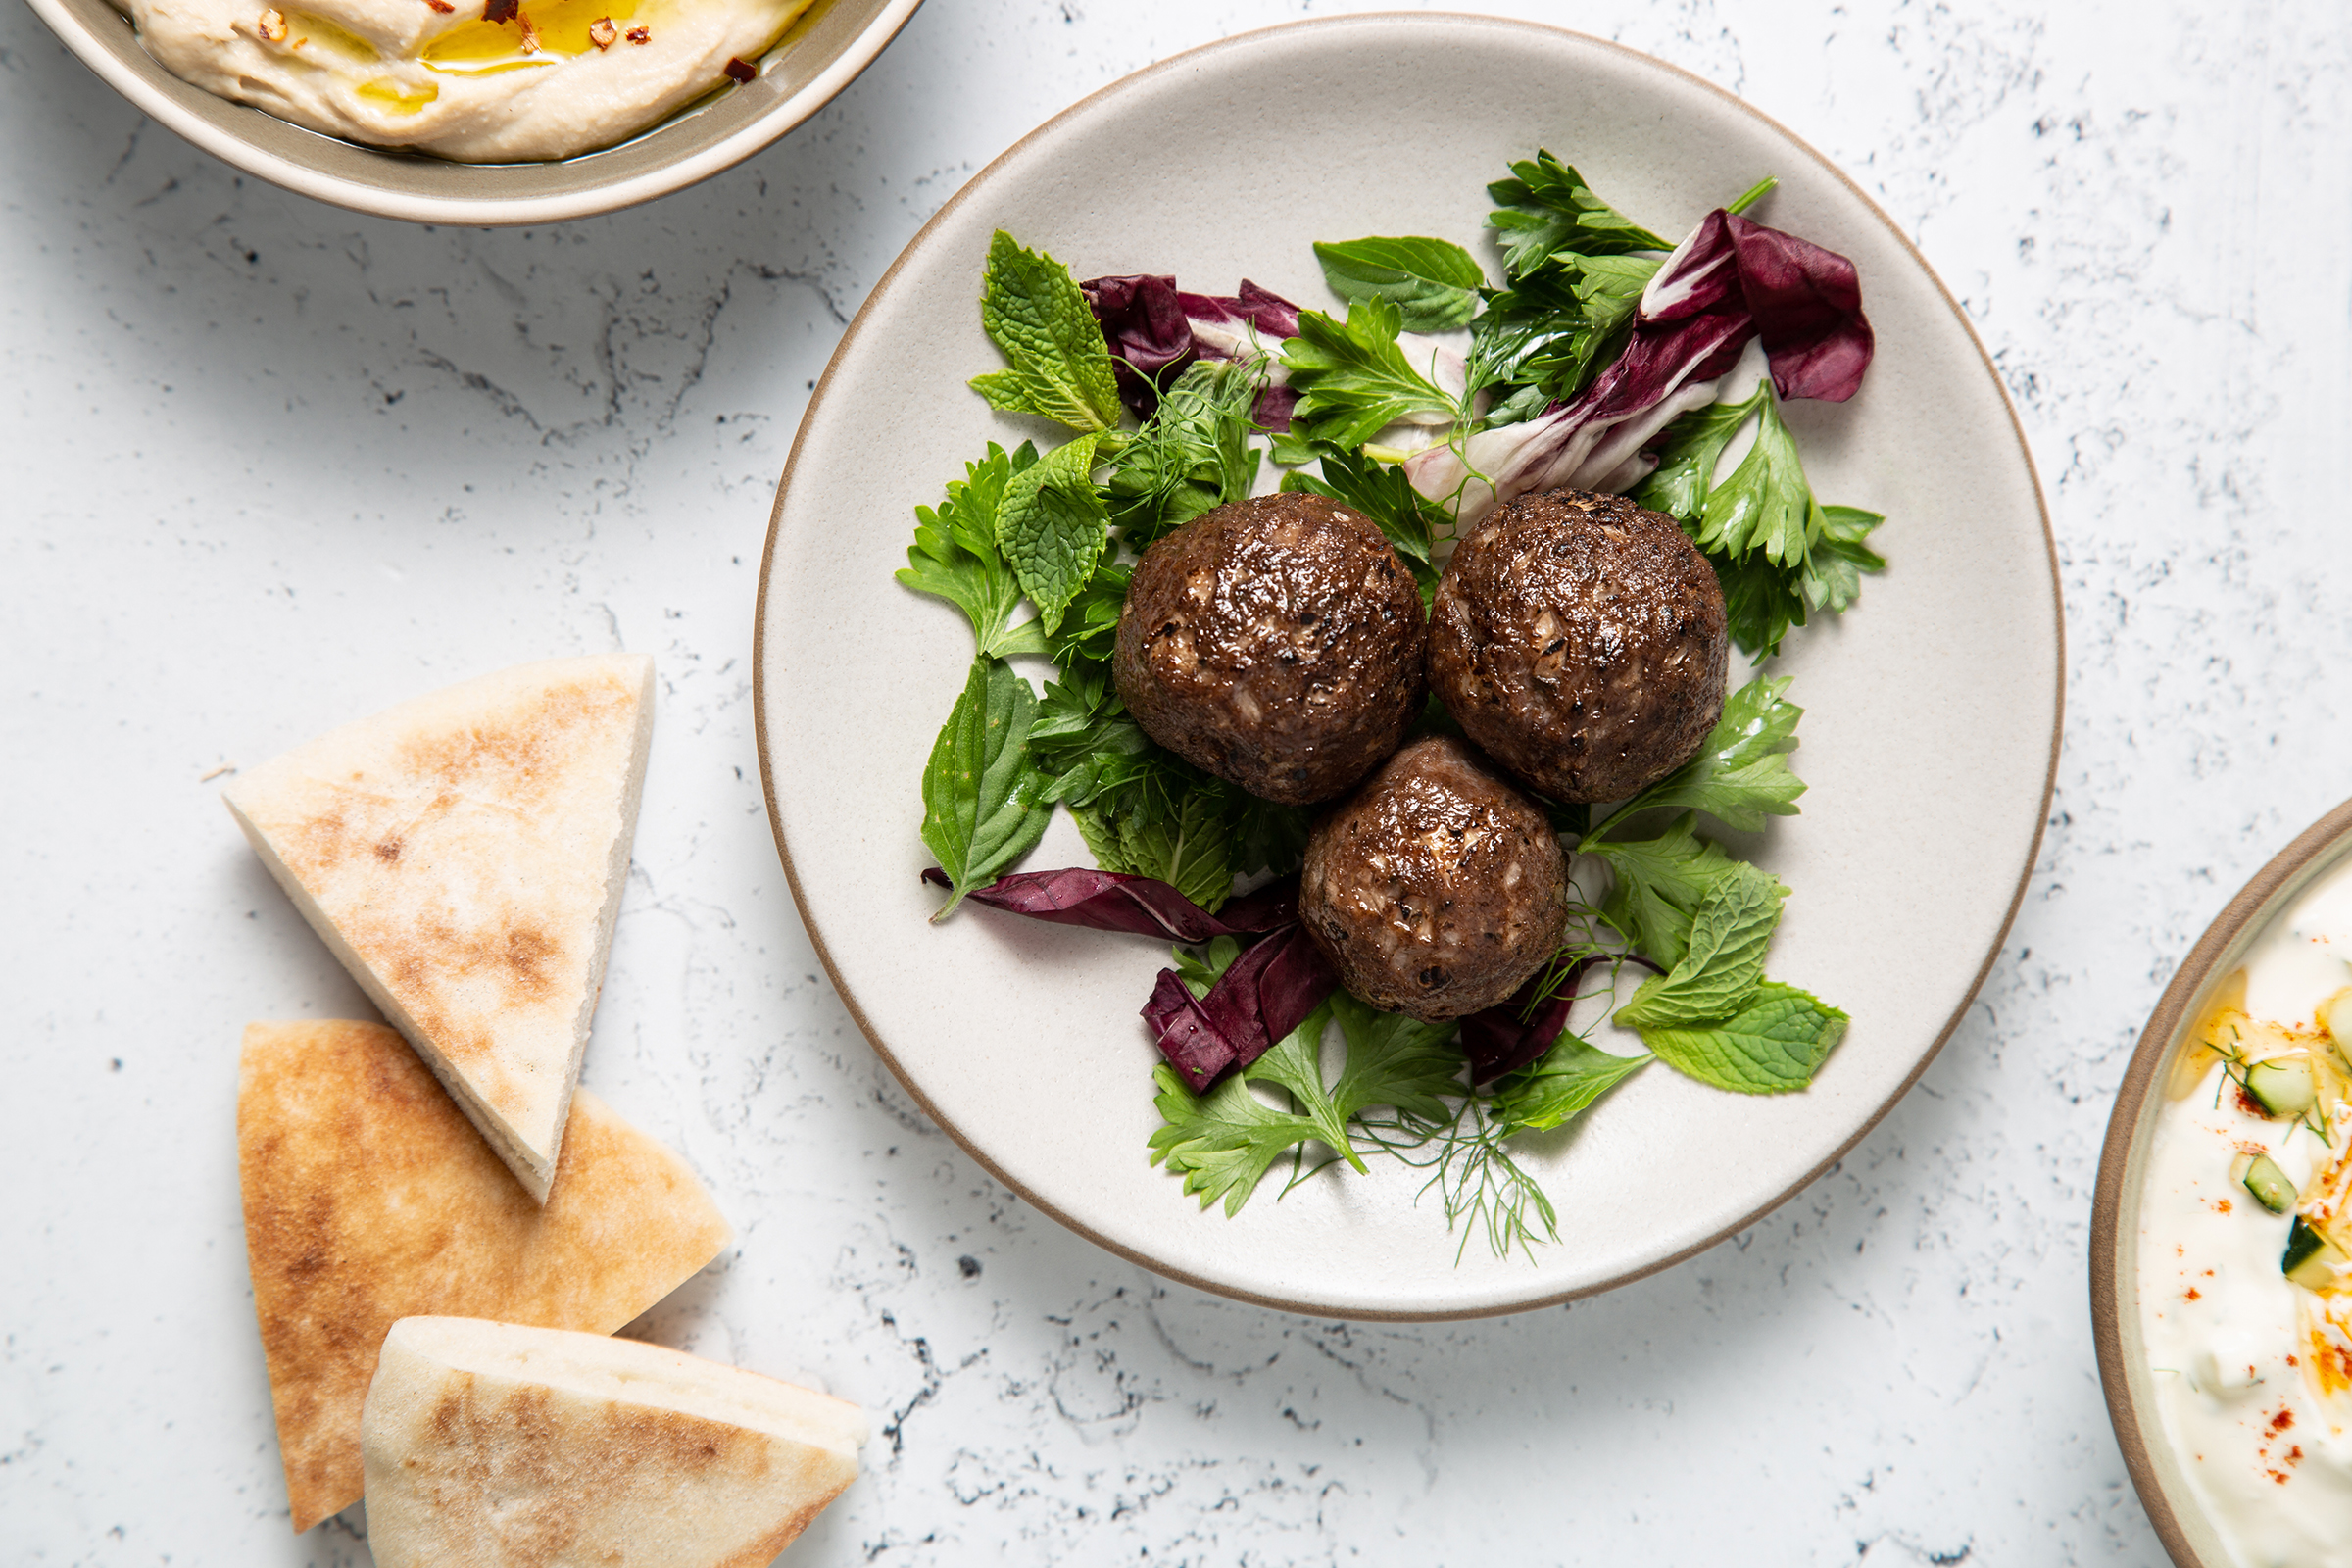 Memphis meats cultivated meatballs